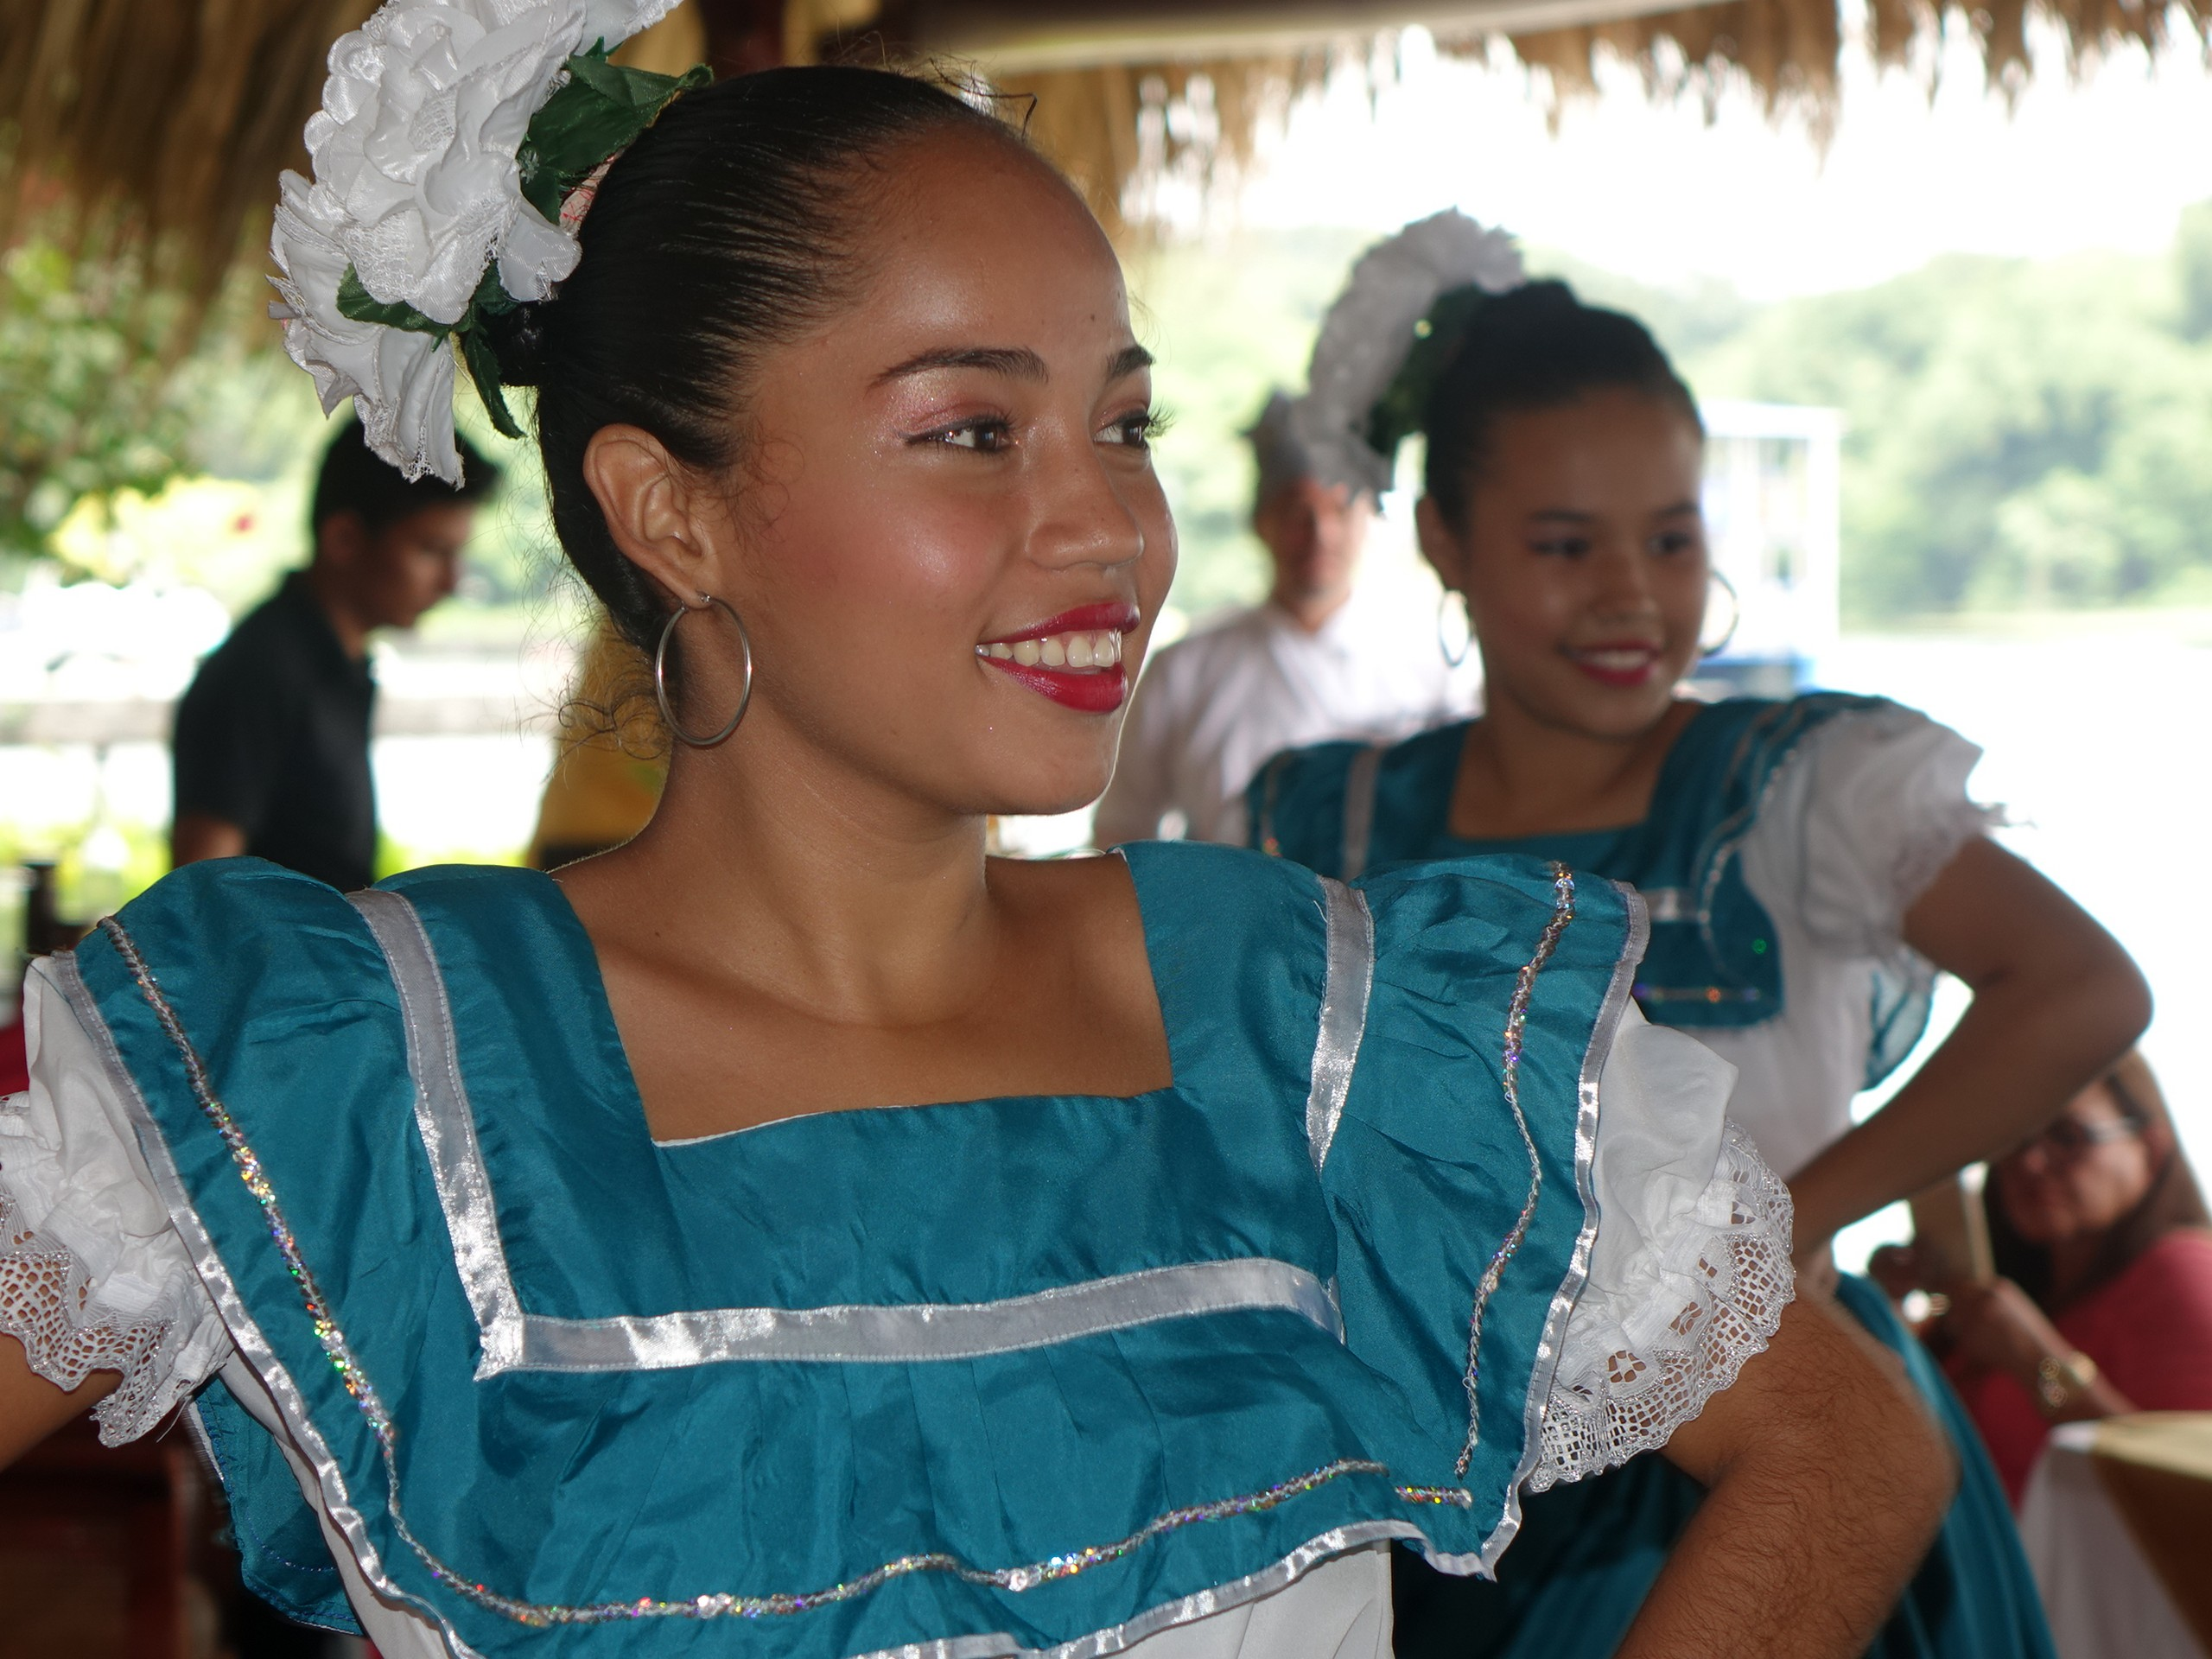 Typical Dance in Nicaragua